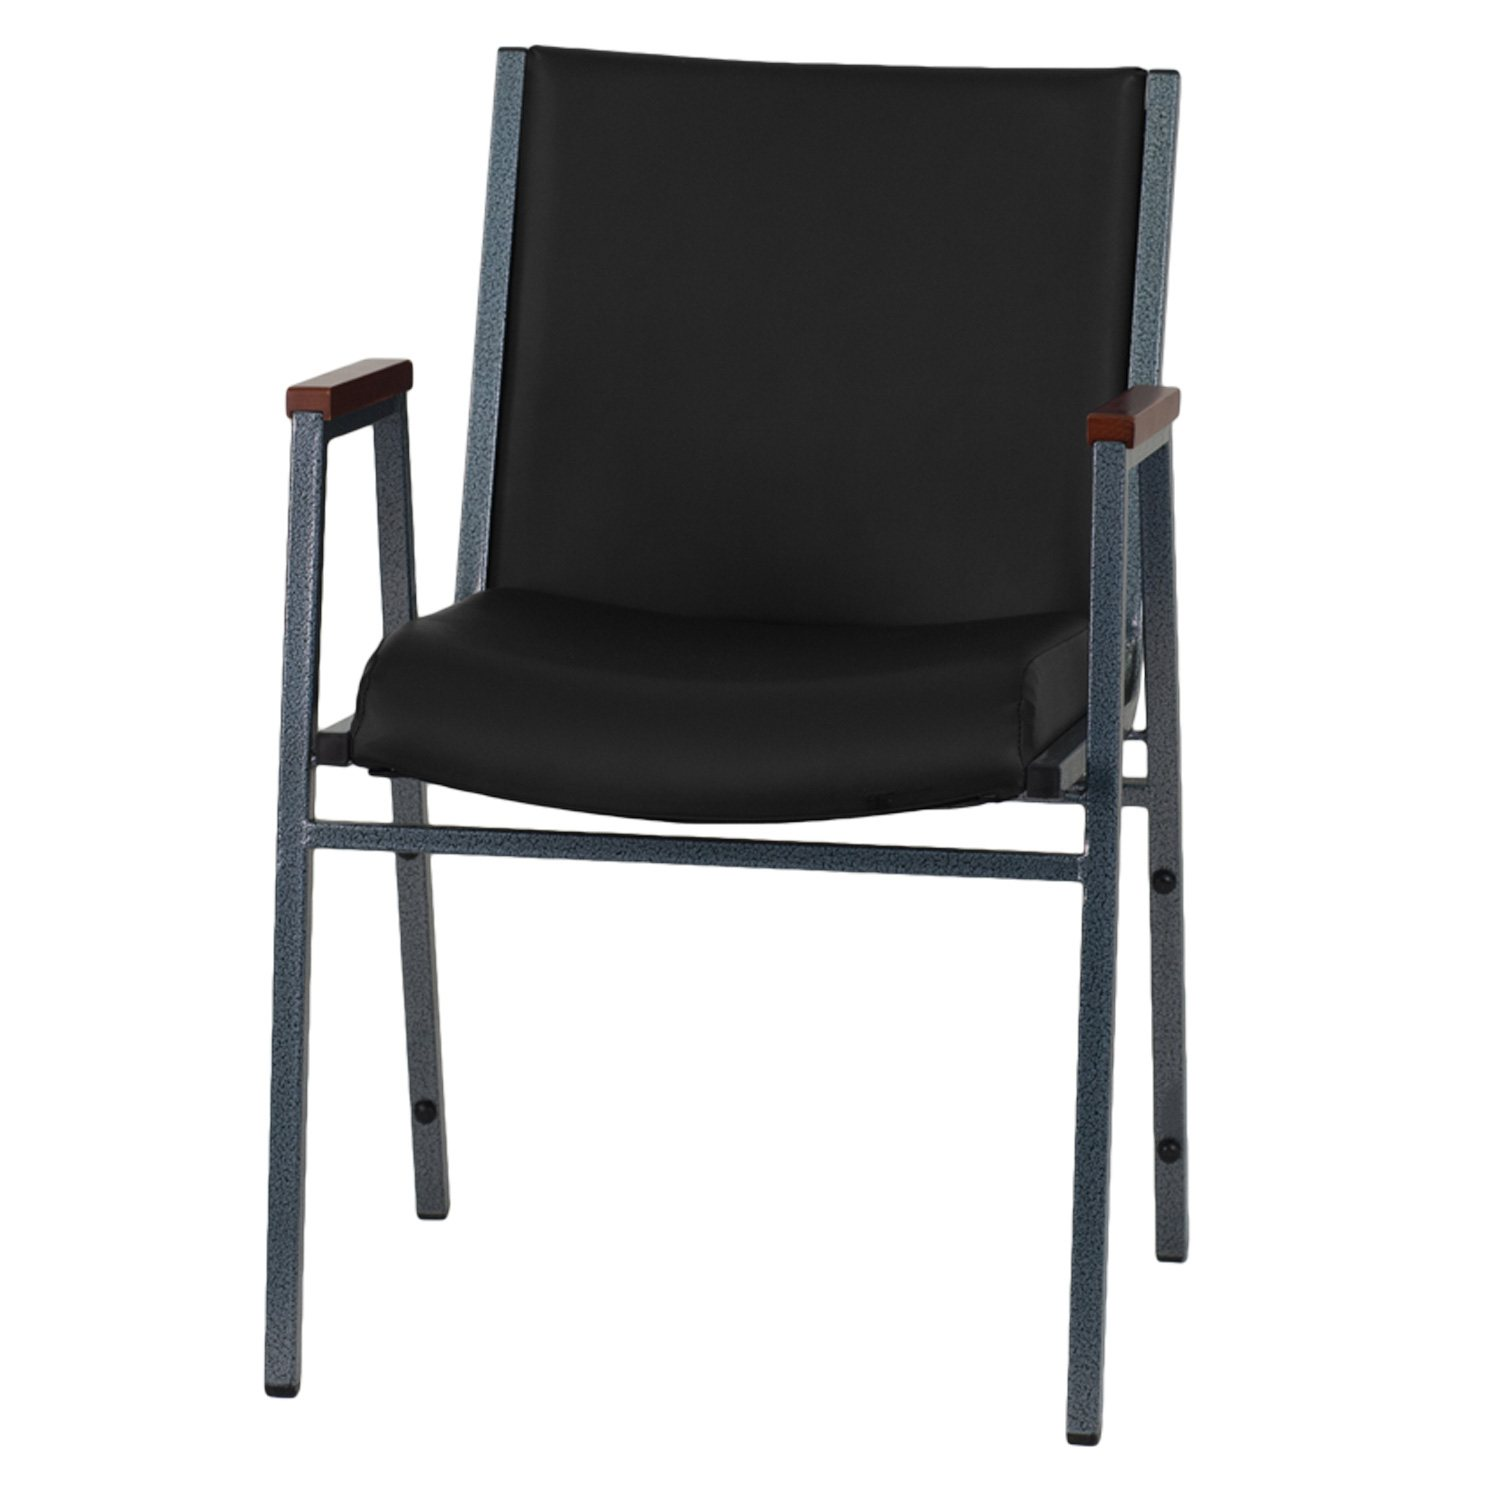 Hercules Padded Vinyl Stacking Chair with Arms Black Sam s Club